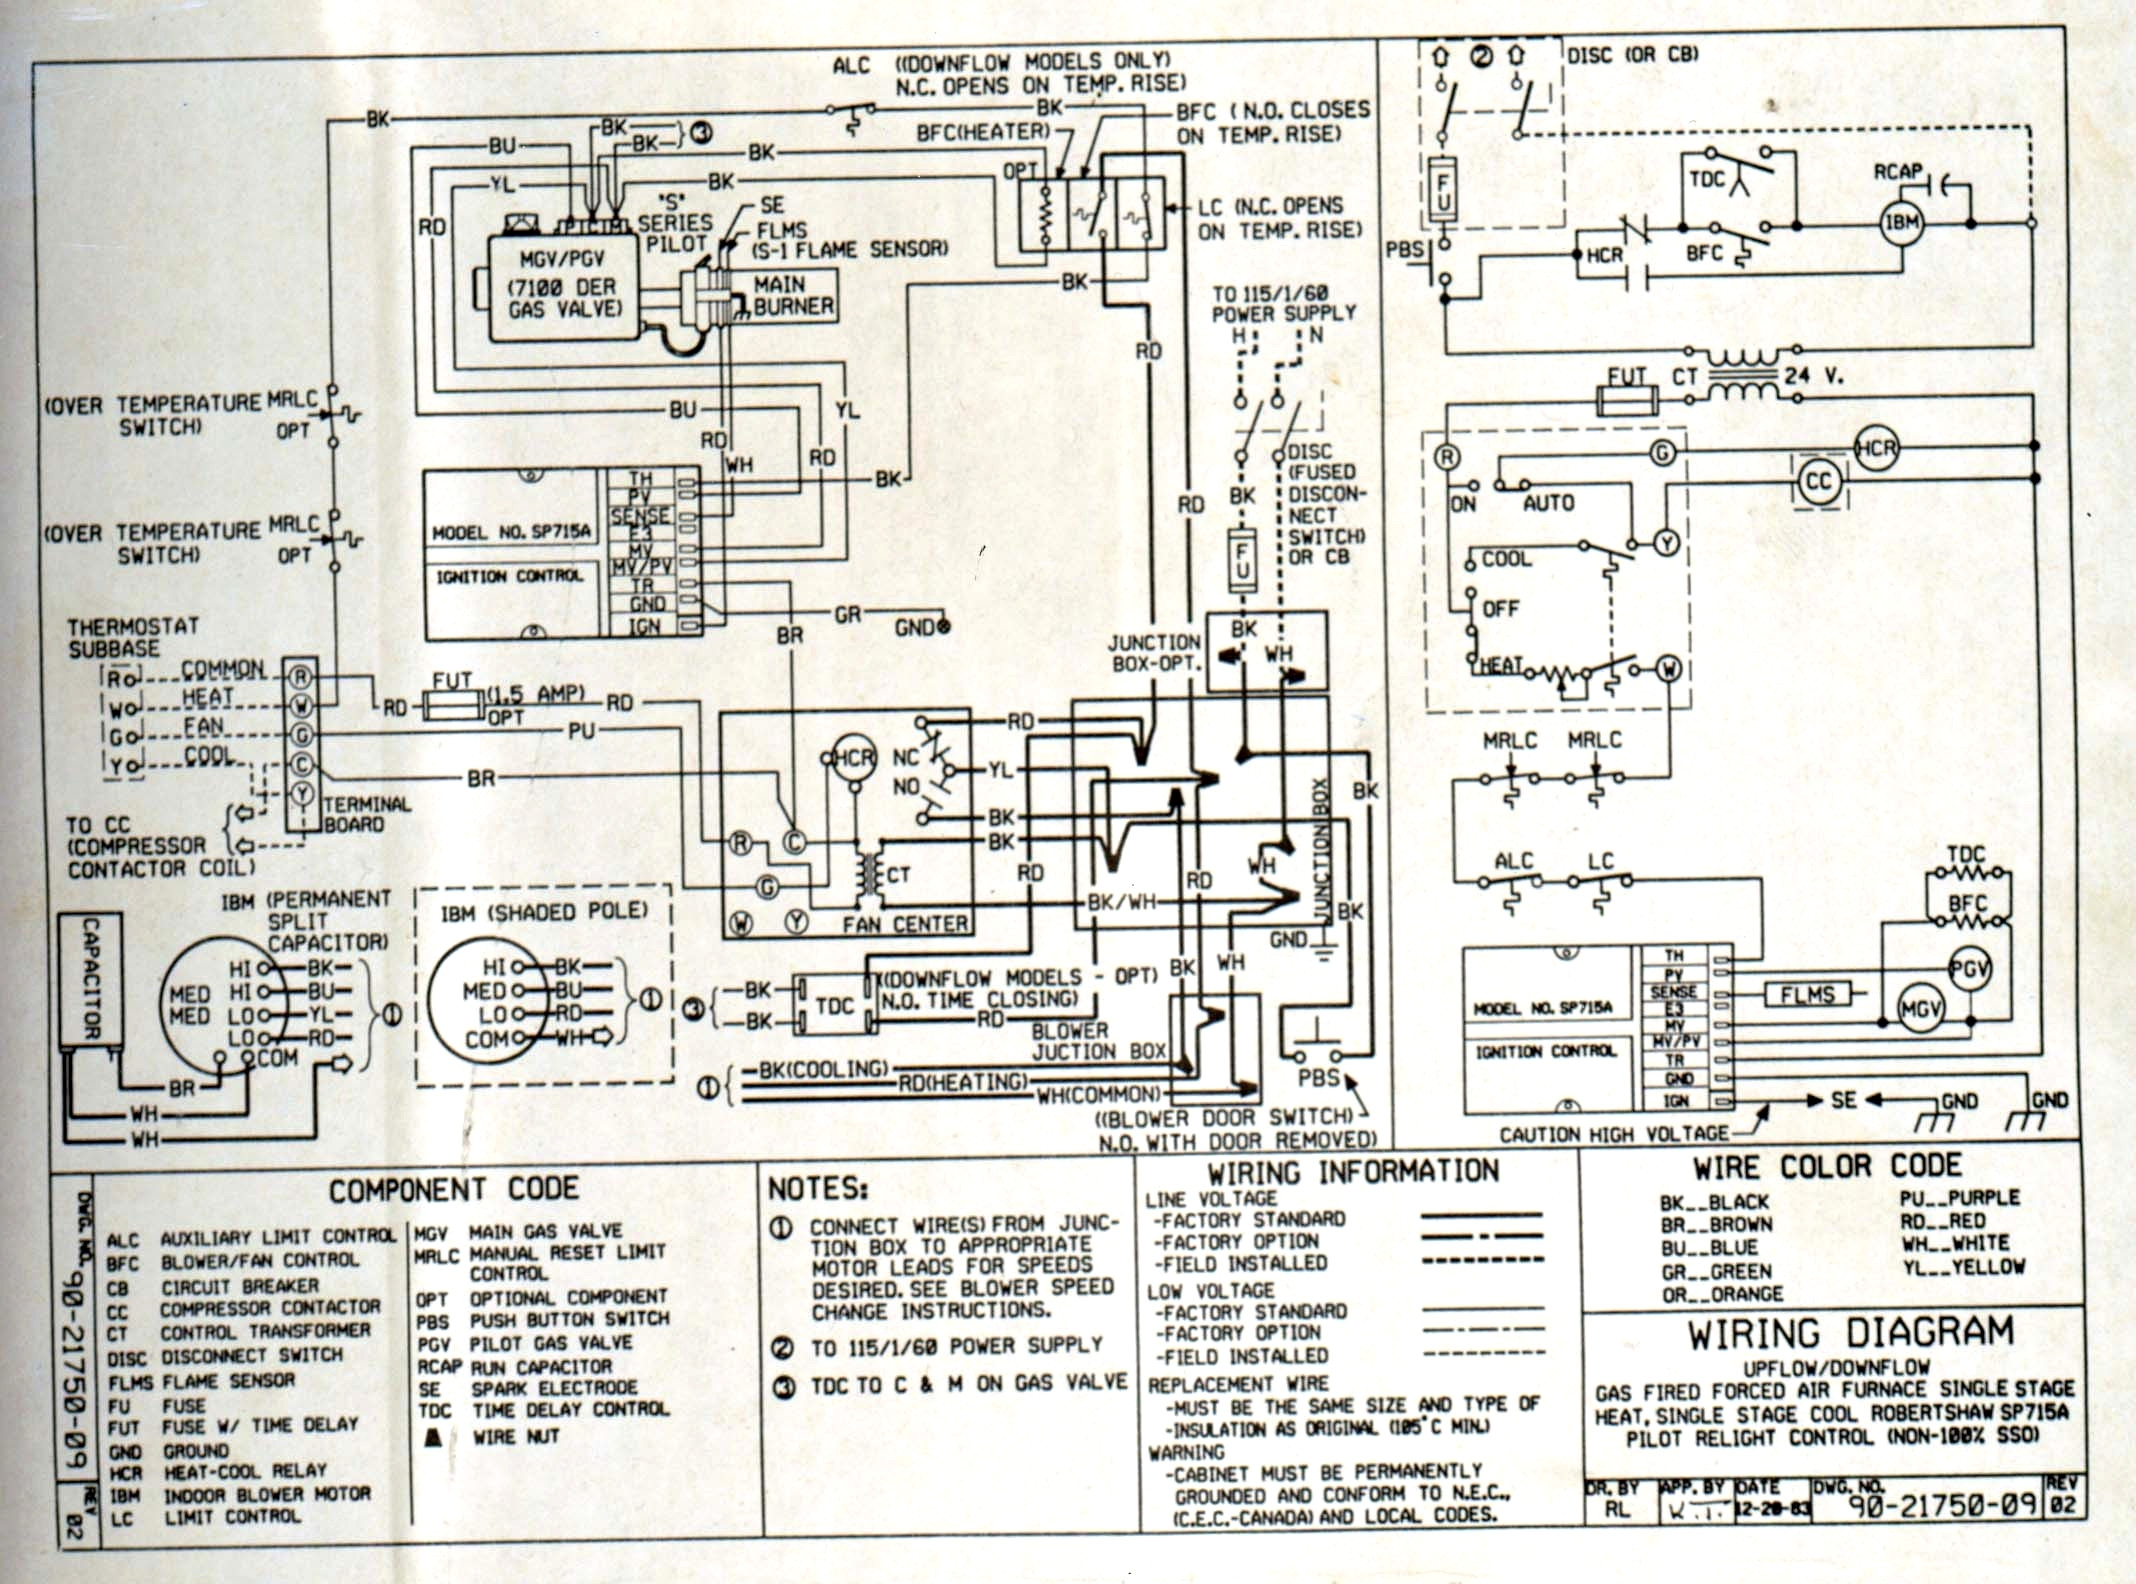 honeywell rm7840l1018 wiring diagram Download-Honeywell Burner Control Wiring Diagram 18-h